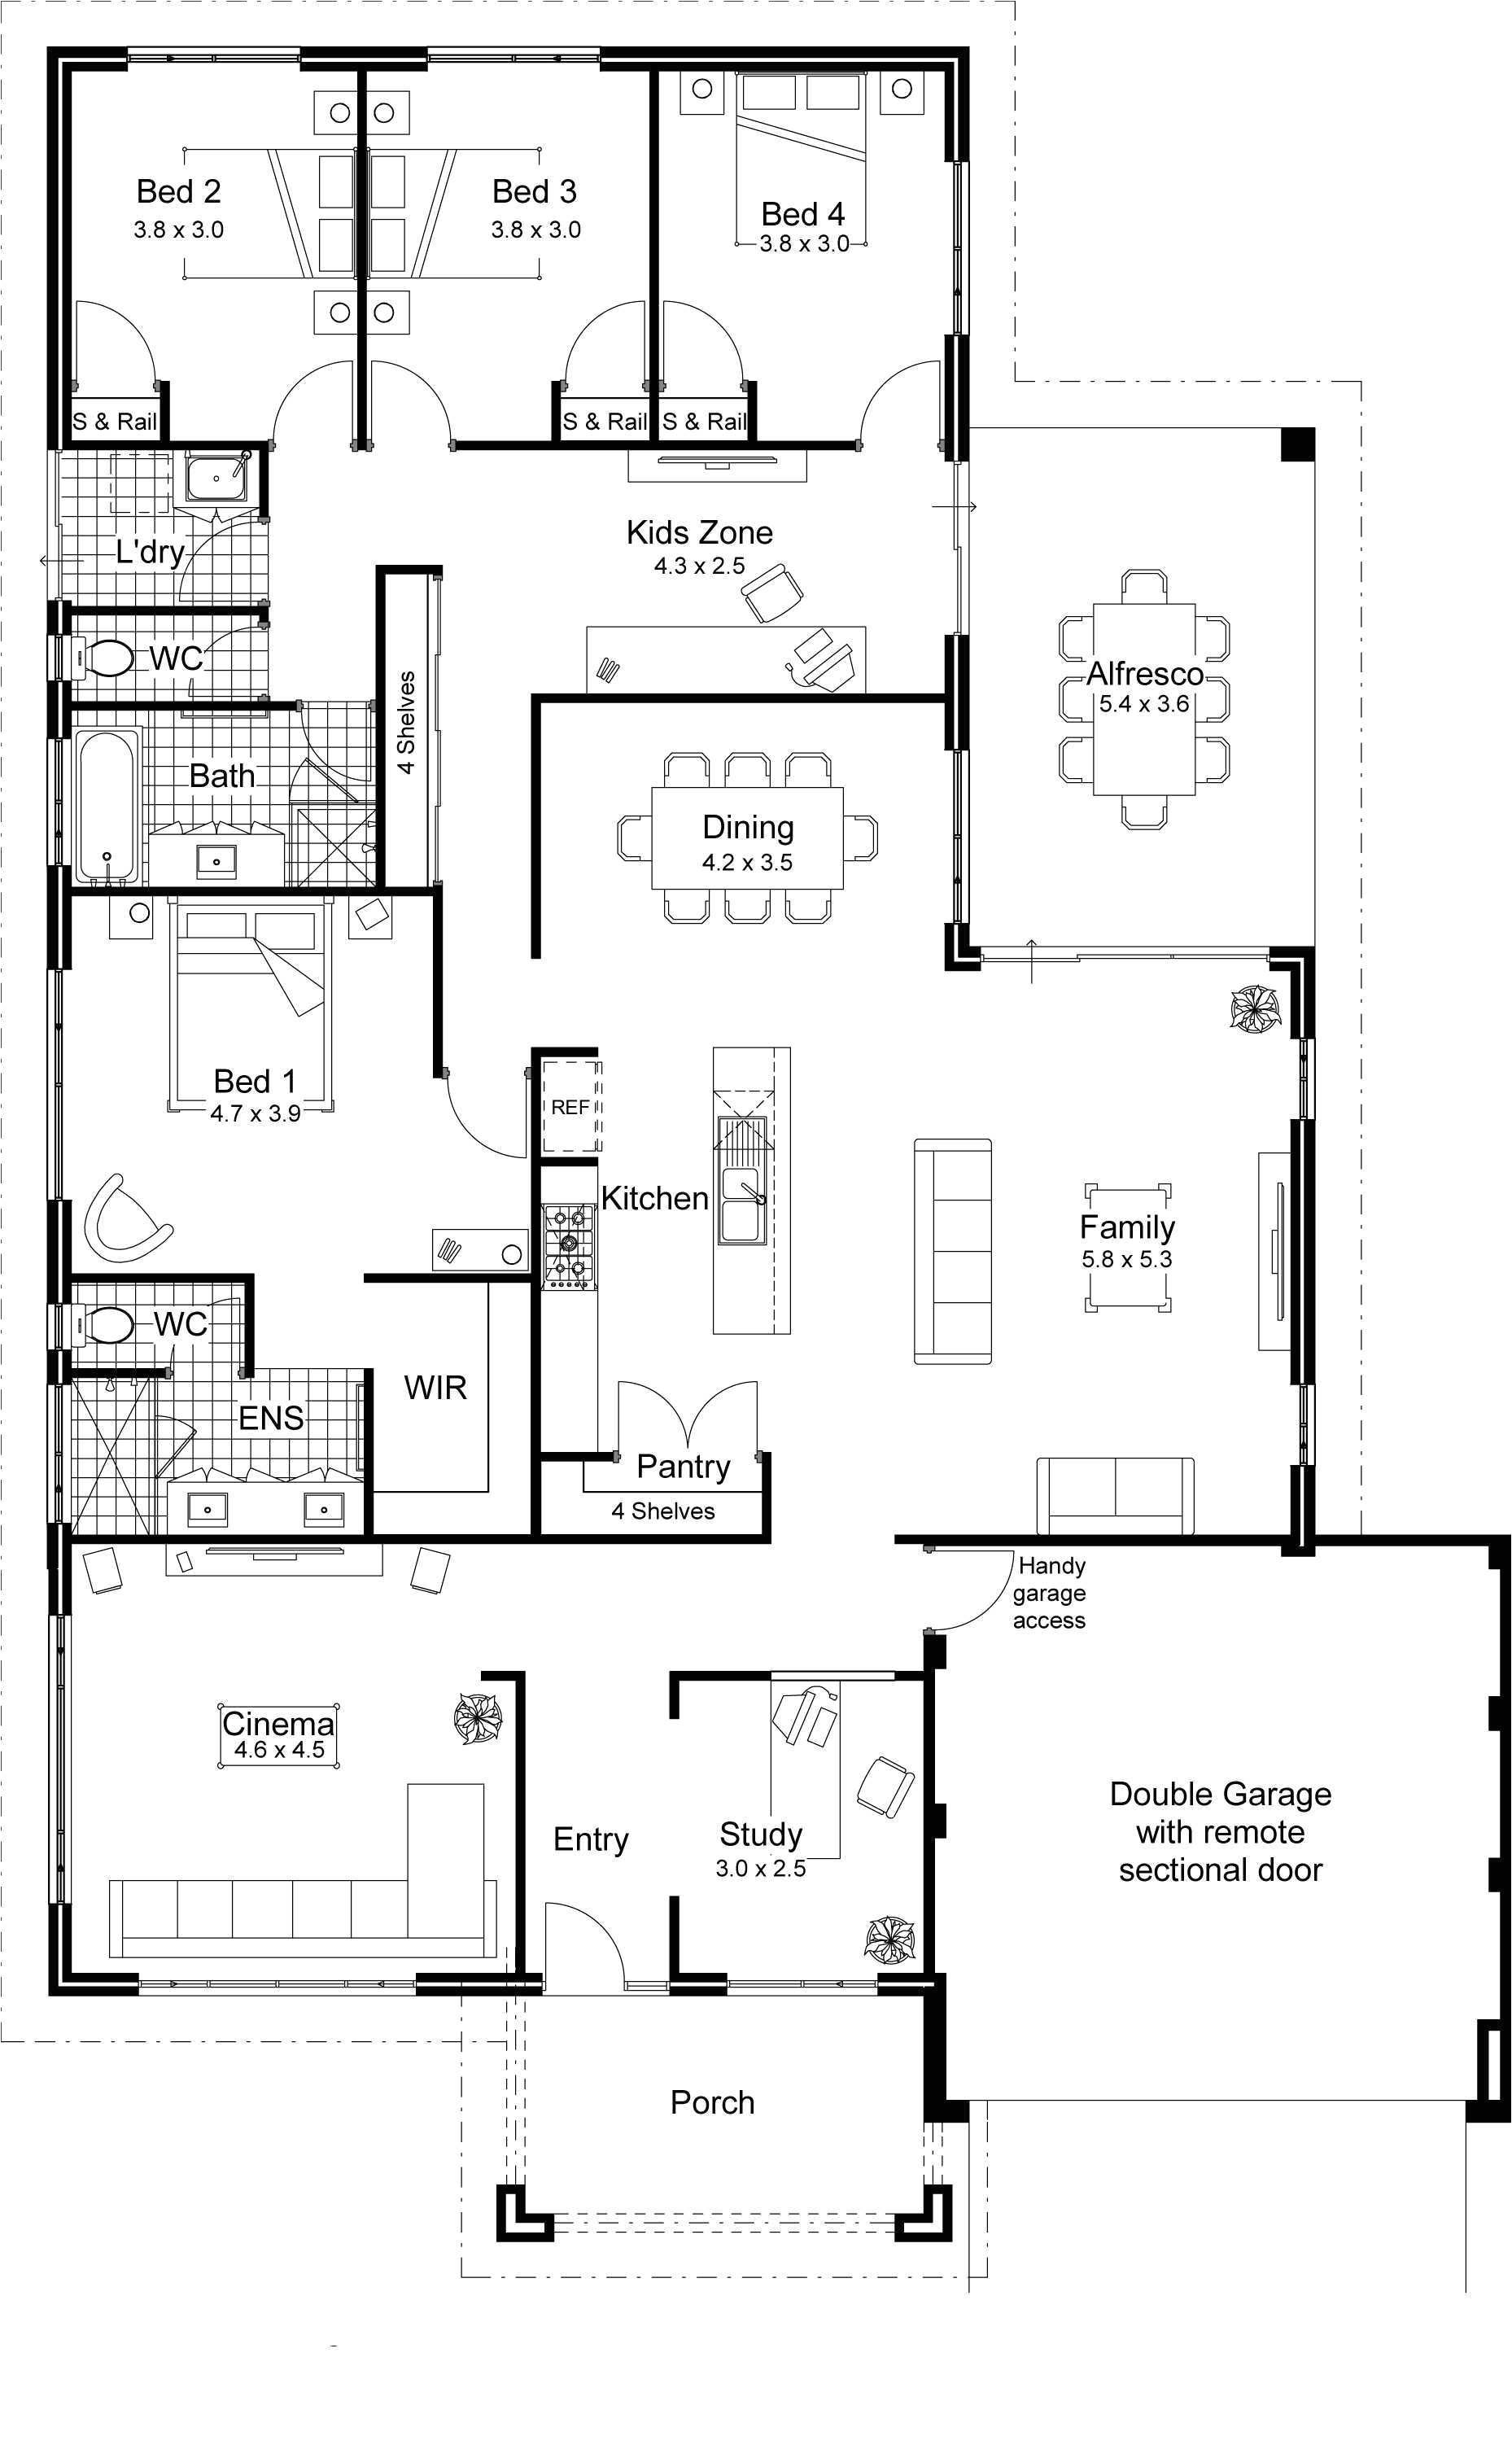 modular home floor plans sc unique 1 bedroom modular homes floor plans four in south carolina 2018